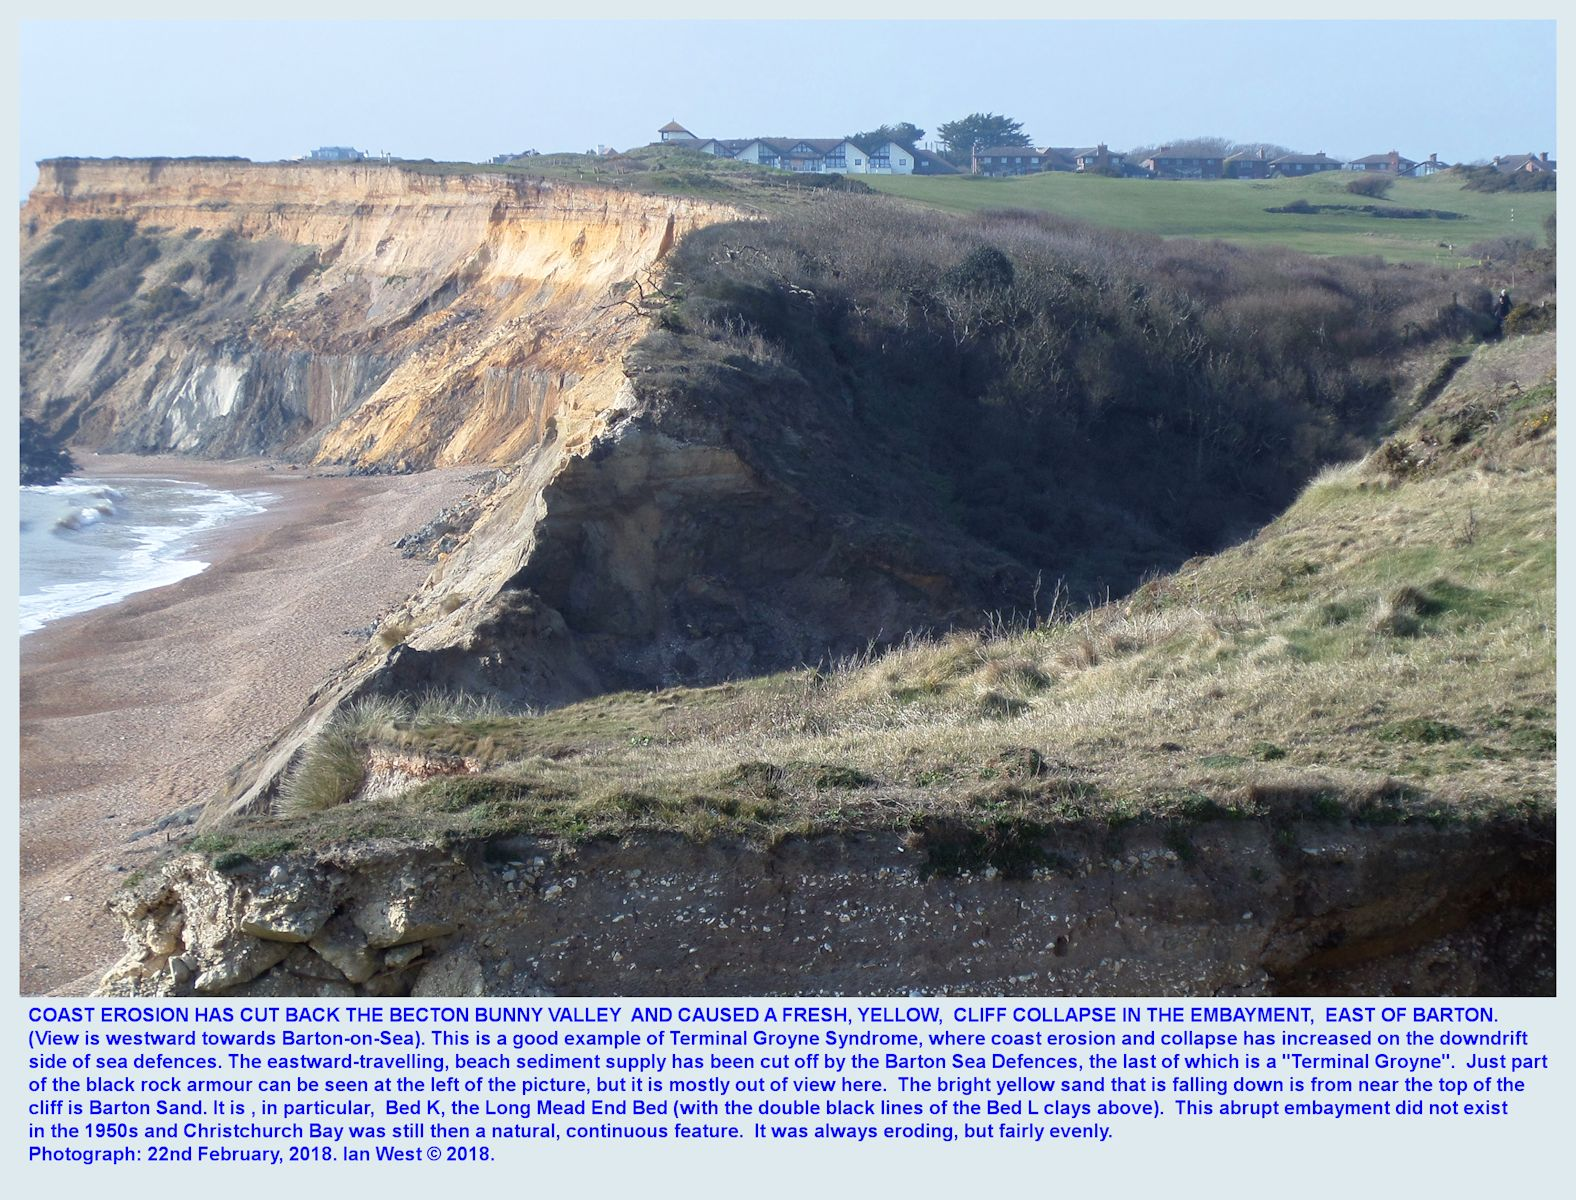 Terminal Groyne Syndrome effect, a new collapse of the Barton Sand in the cliff just east of the eastern end of the Barton sea defences near Becton Bunny, between Barton-on-Sea and Hordle Cliff, Hampshire, southern England, 22nd February 2018